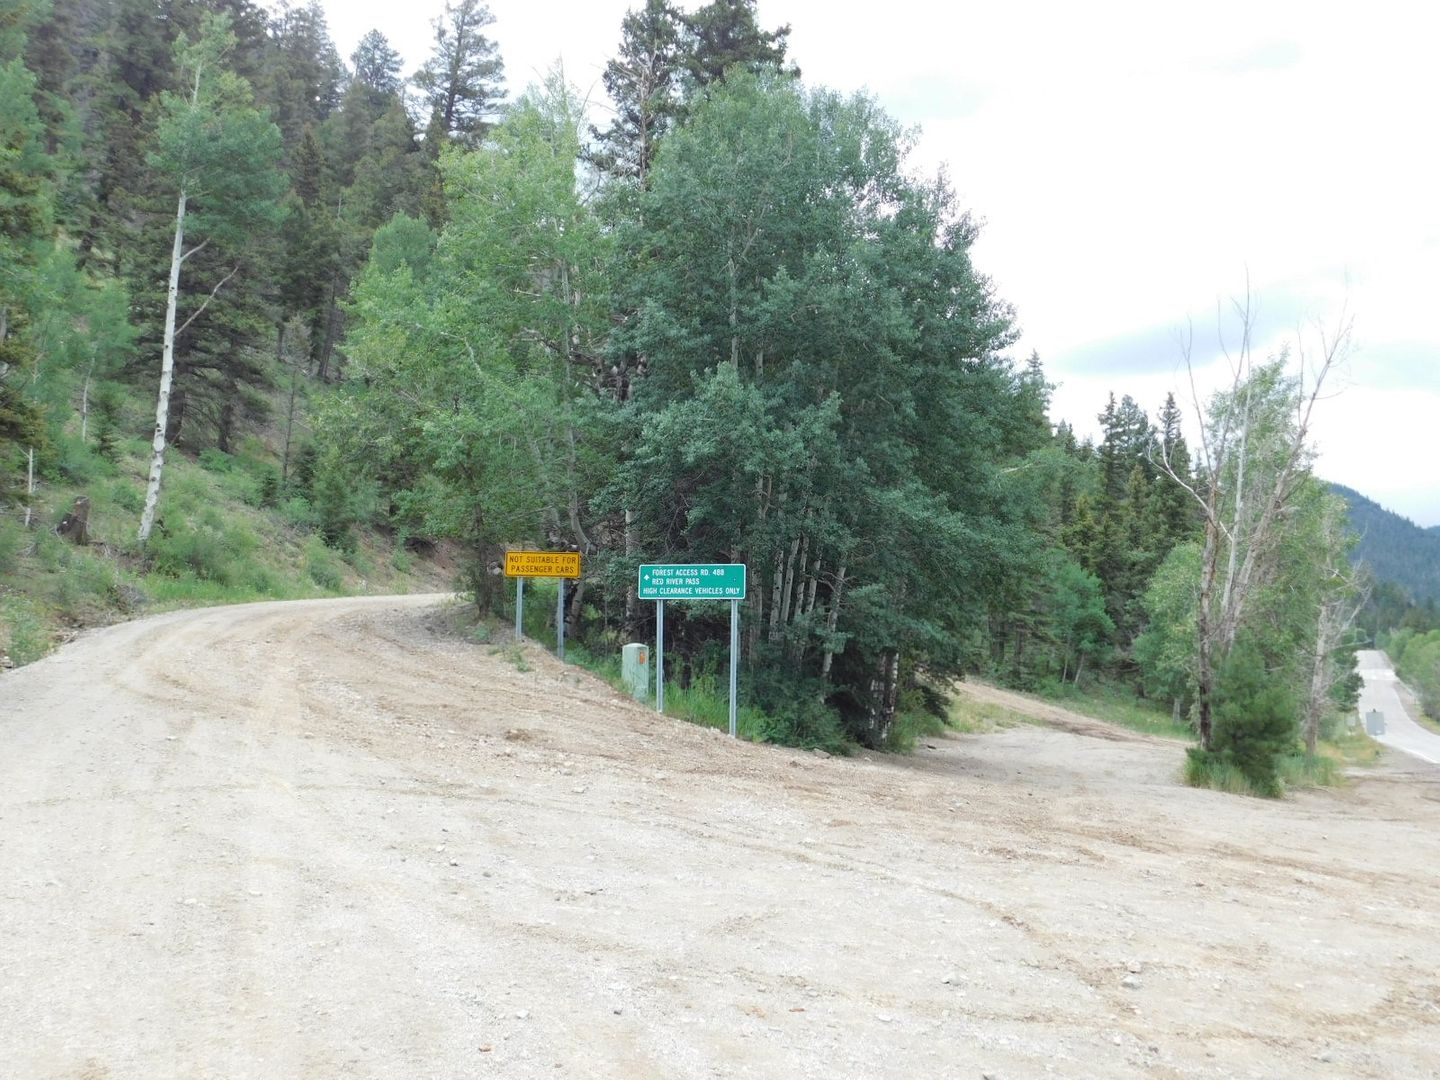 Old Red River Pass - Waypoint 1: Trailhead